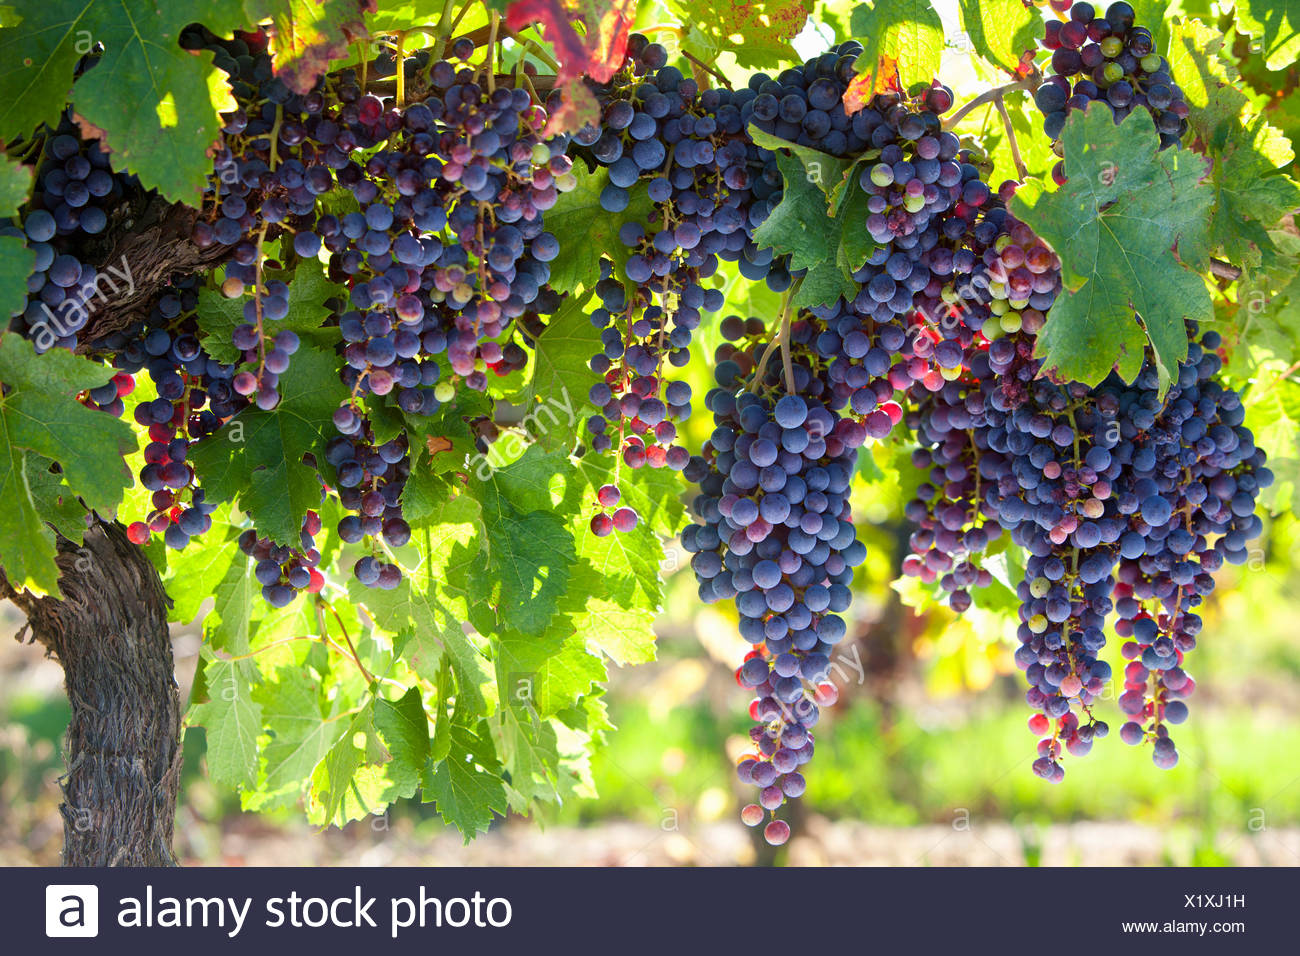 Bunches of purple grapes growing on vines in vineyard - Stock Image